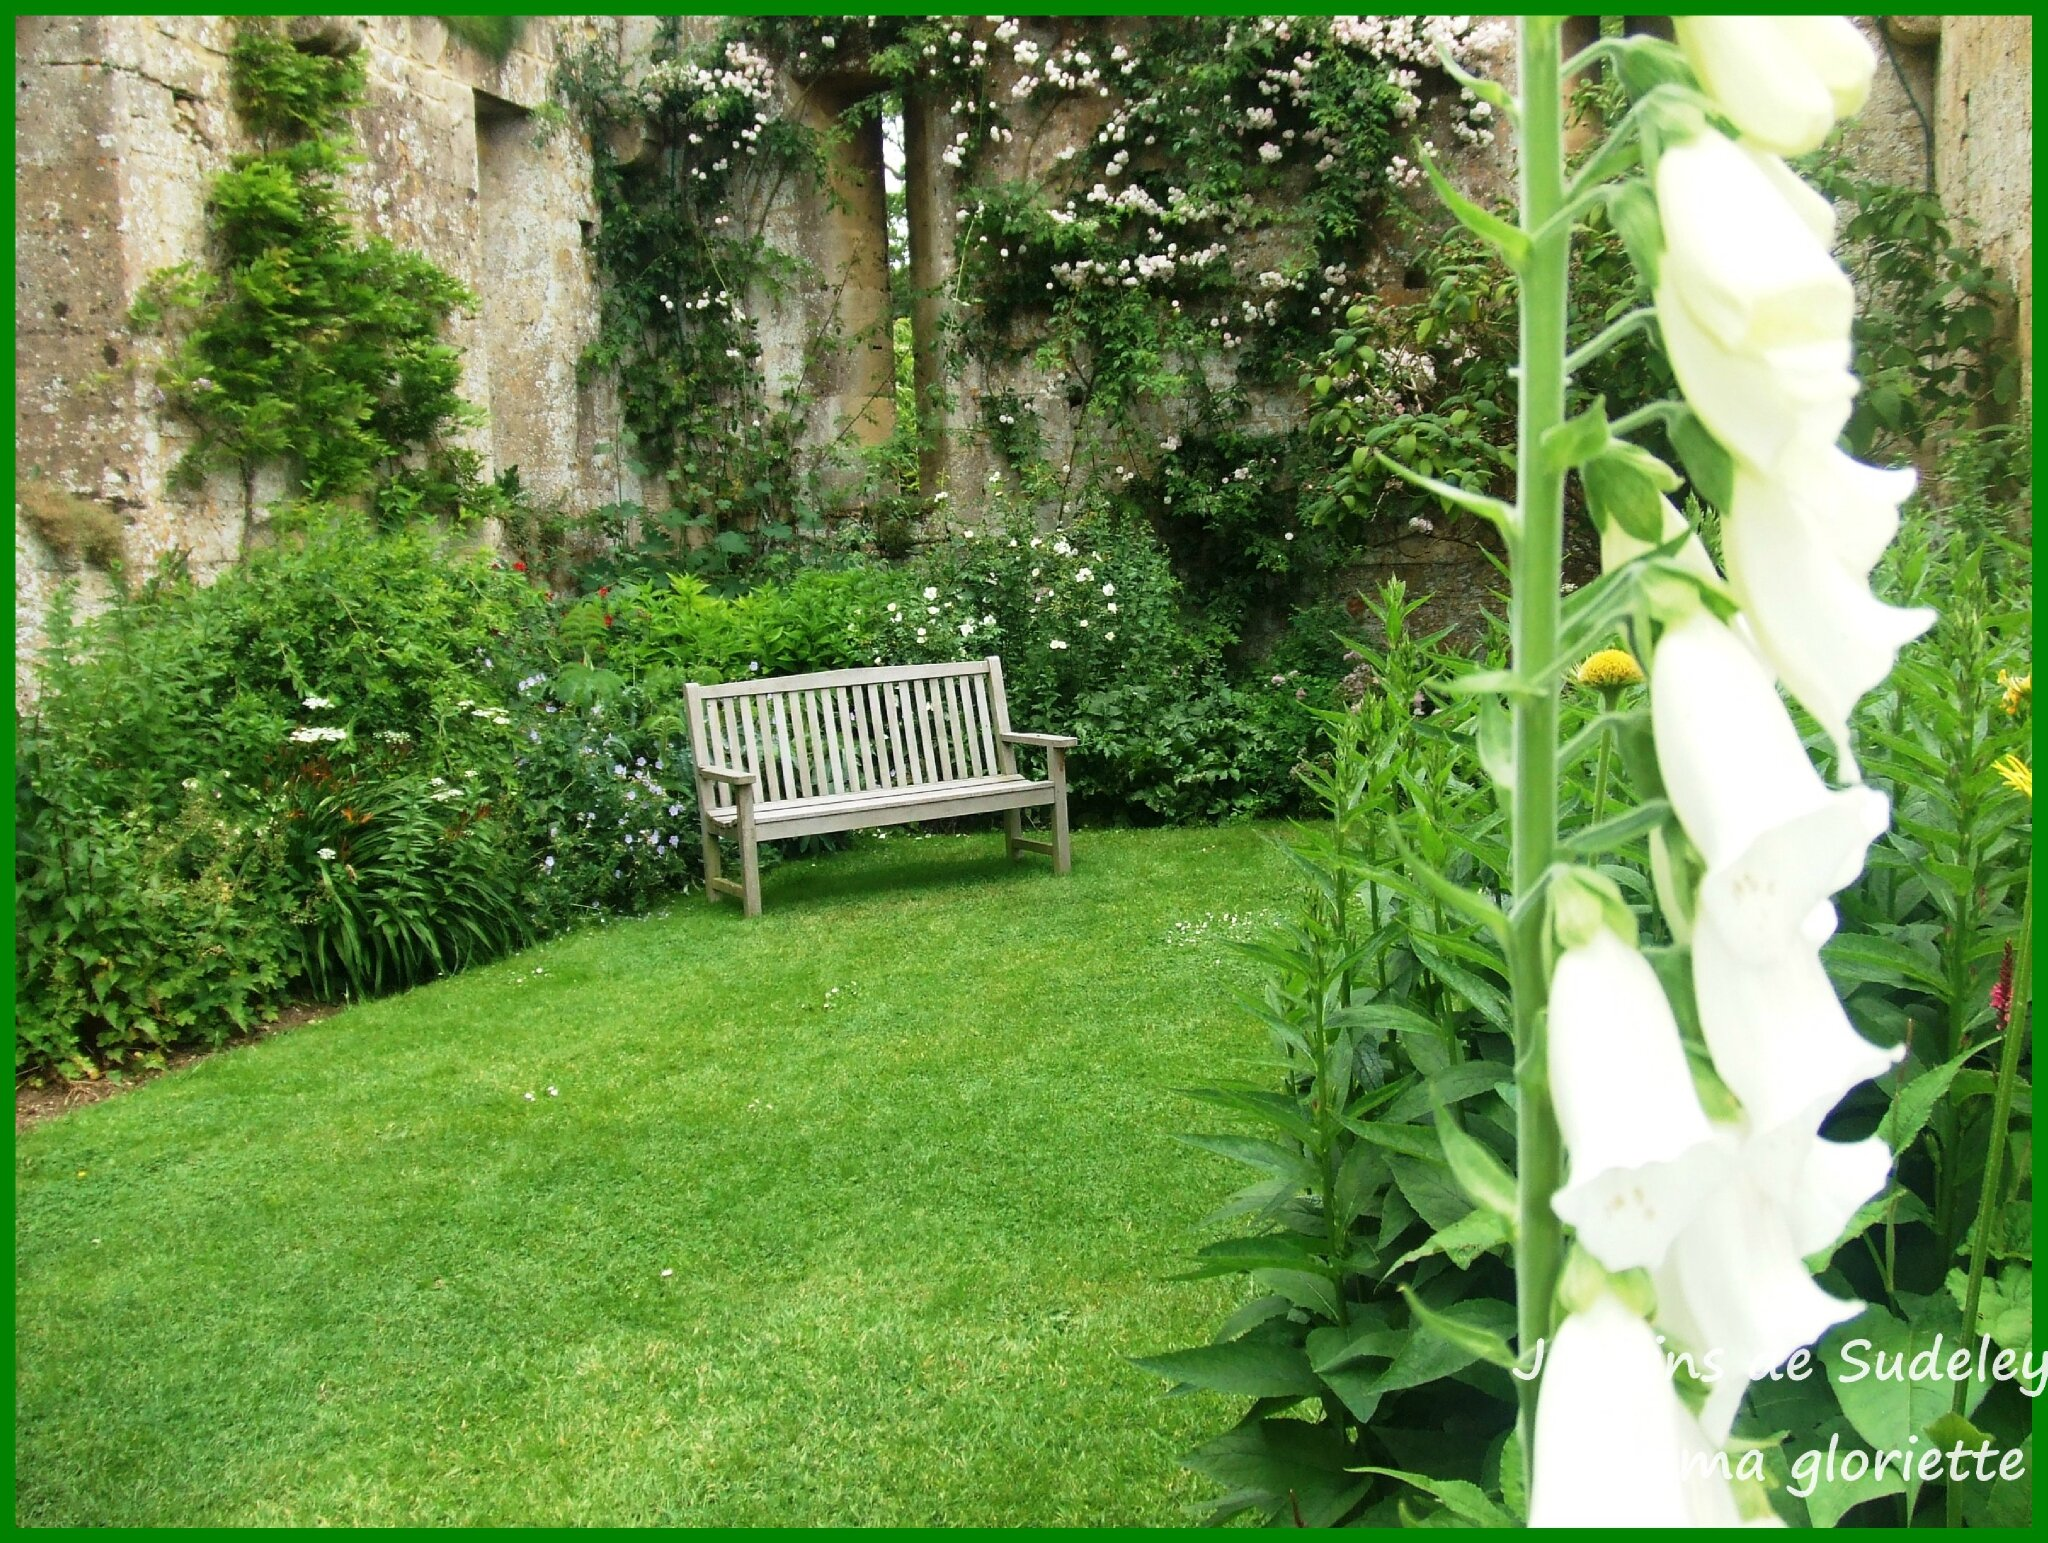 sudeley46